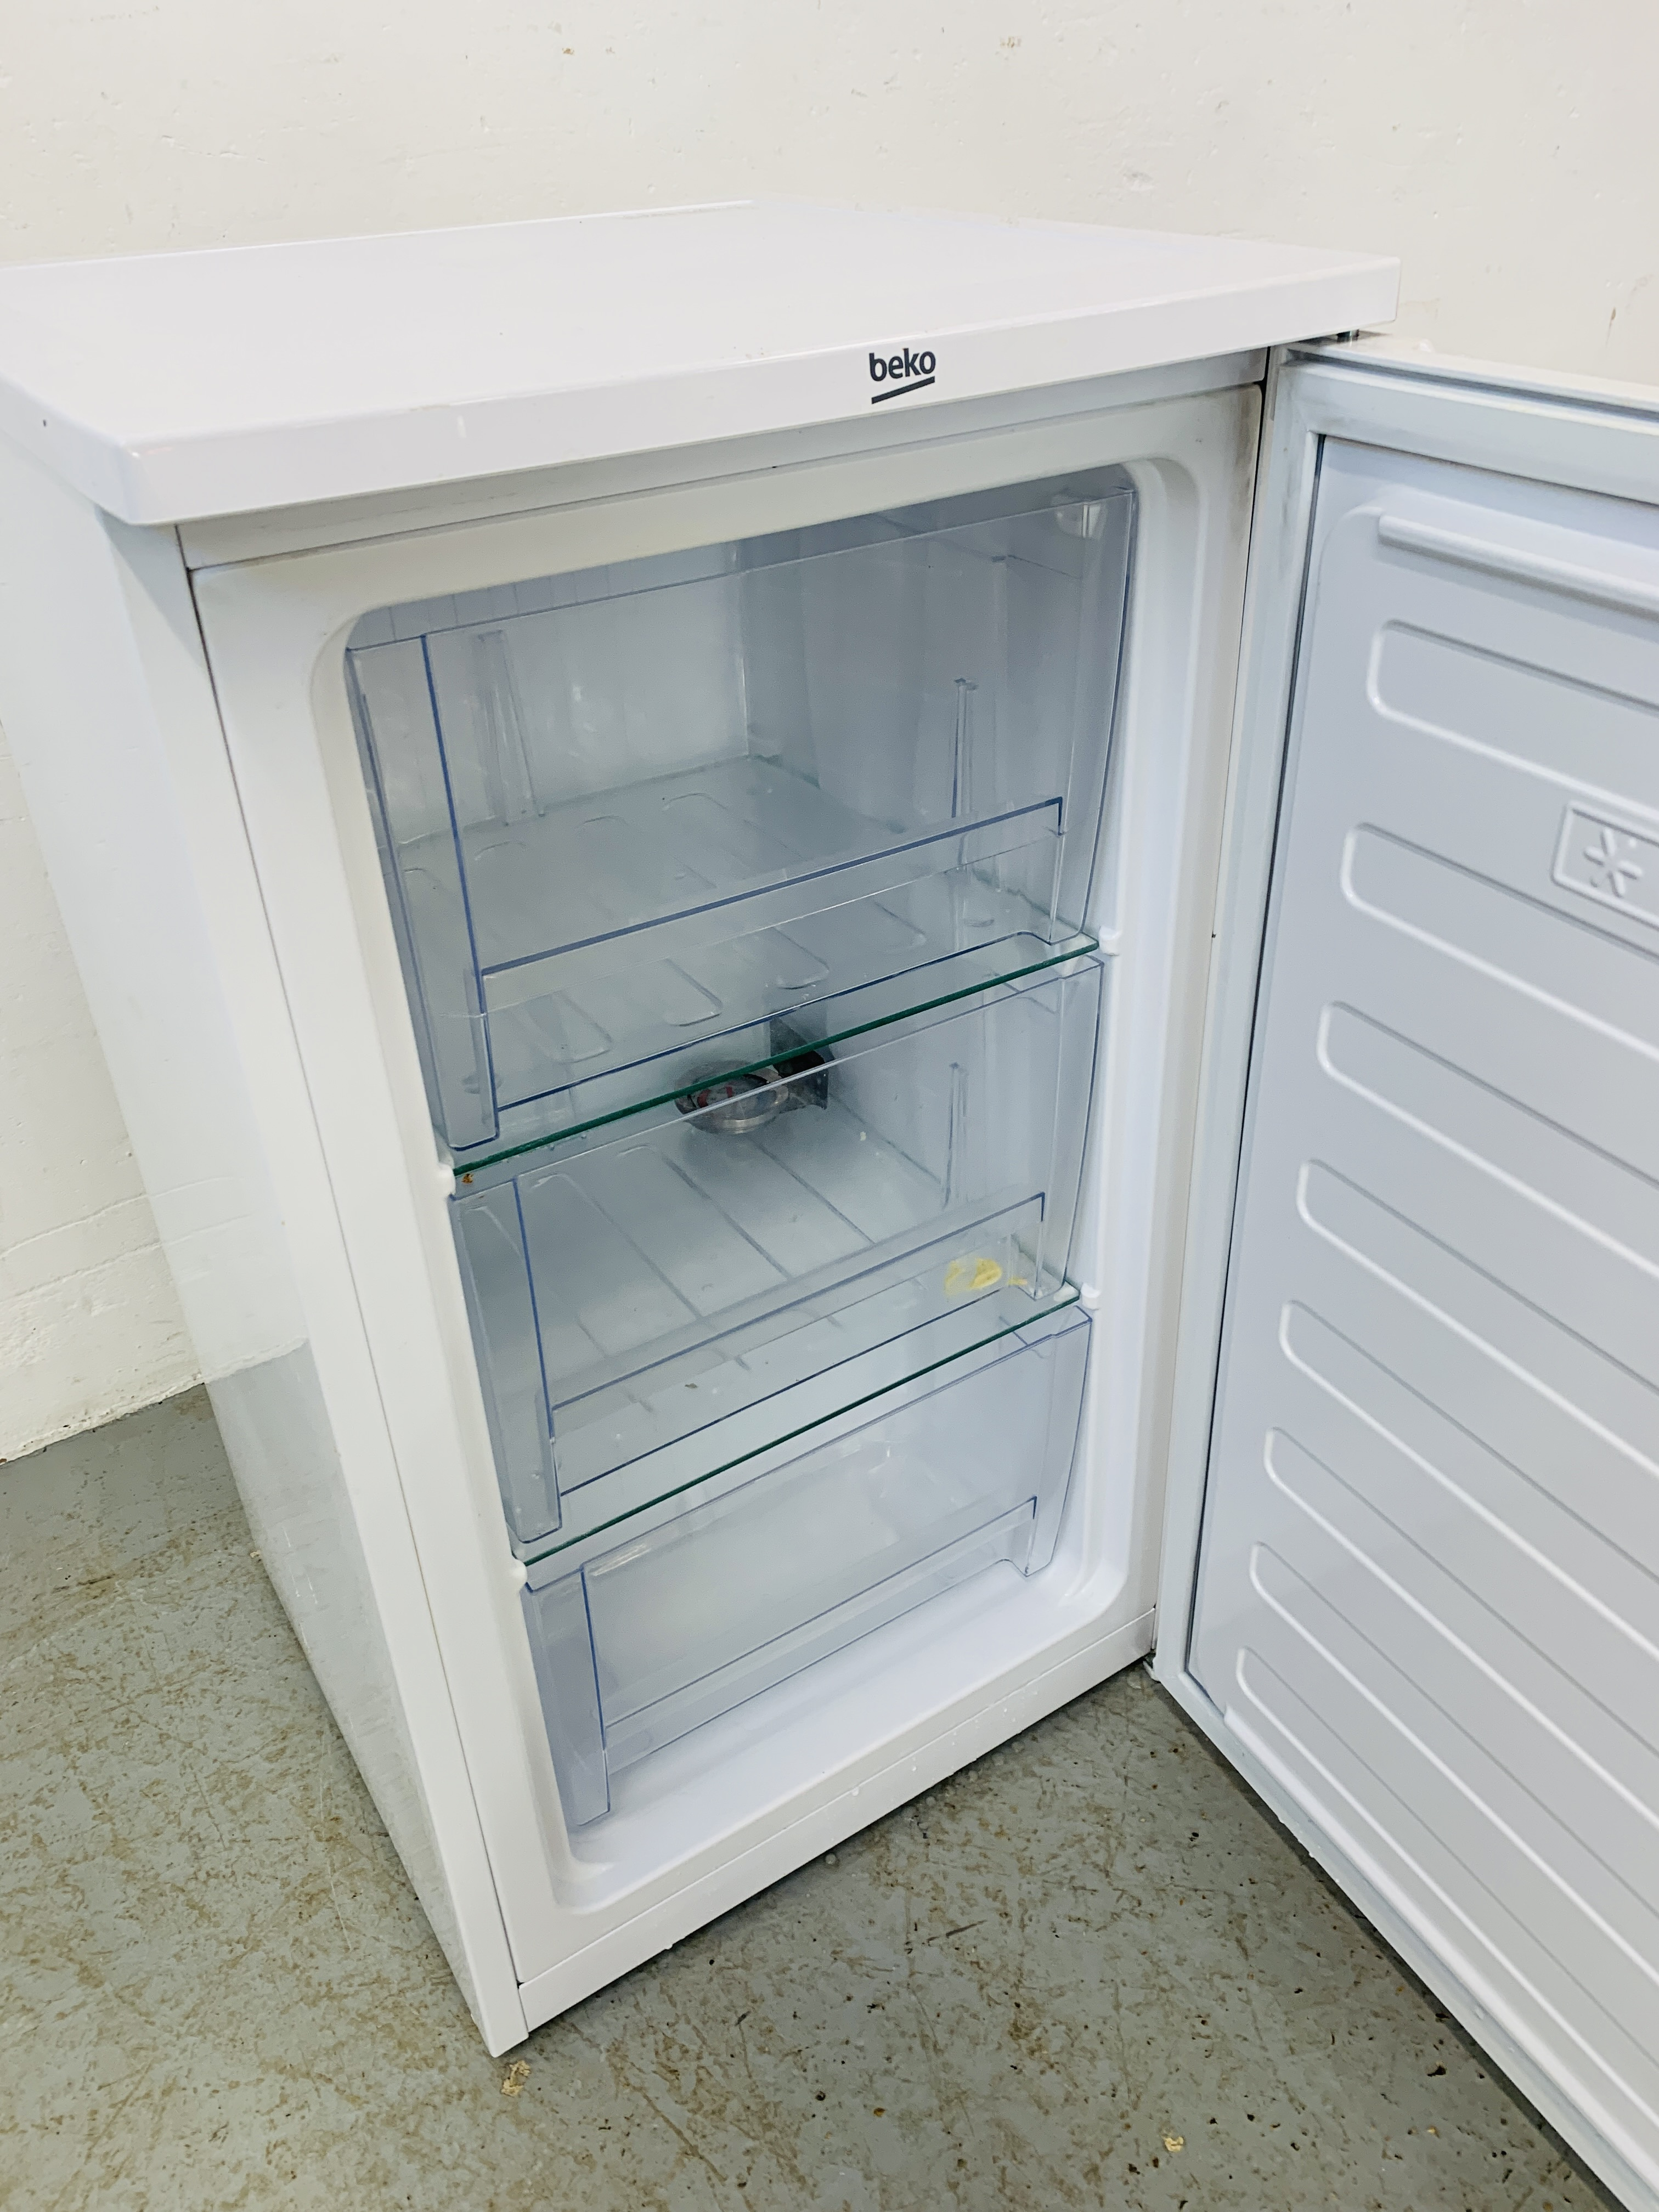 A BEKO UNDERCOUNTER FREEZER - SOLD AS SEEN - Image 6 of 6